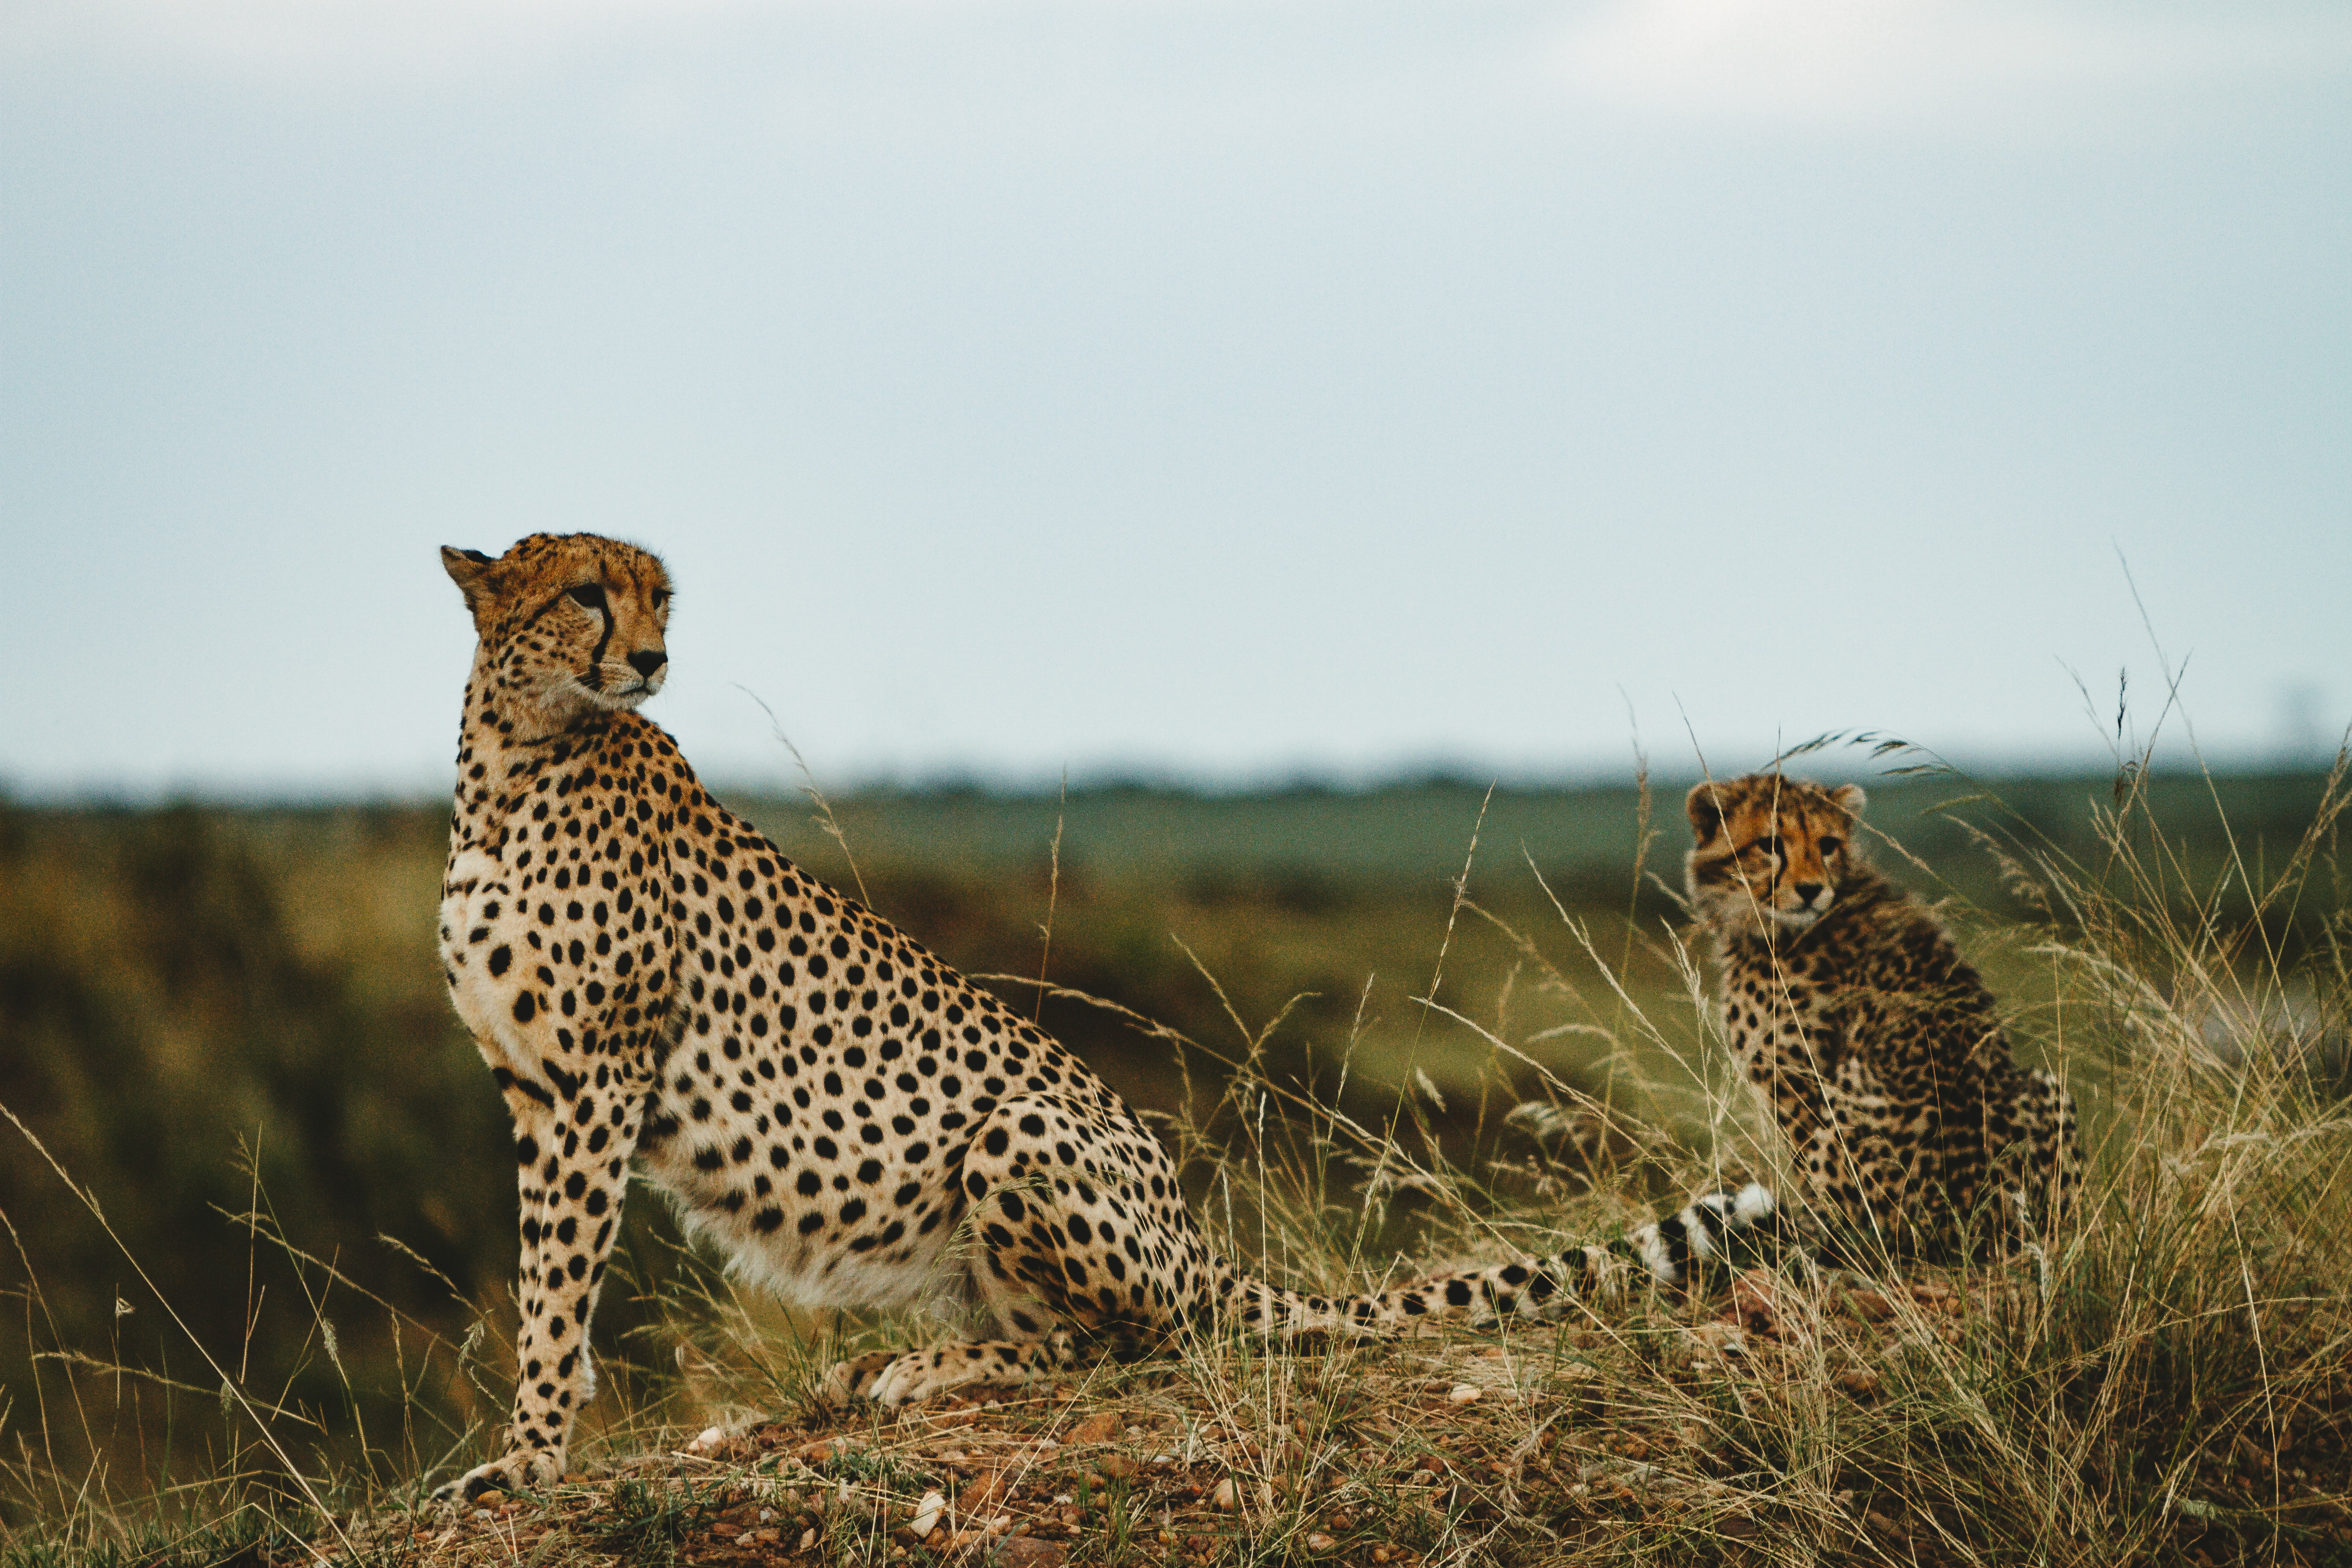 Cheetah with cub on grass field